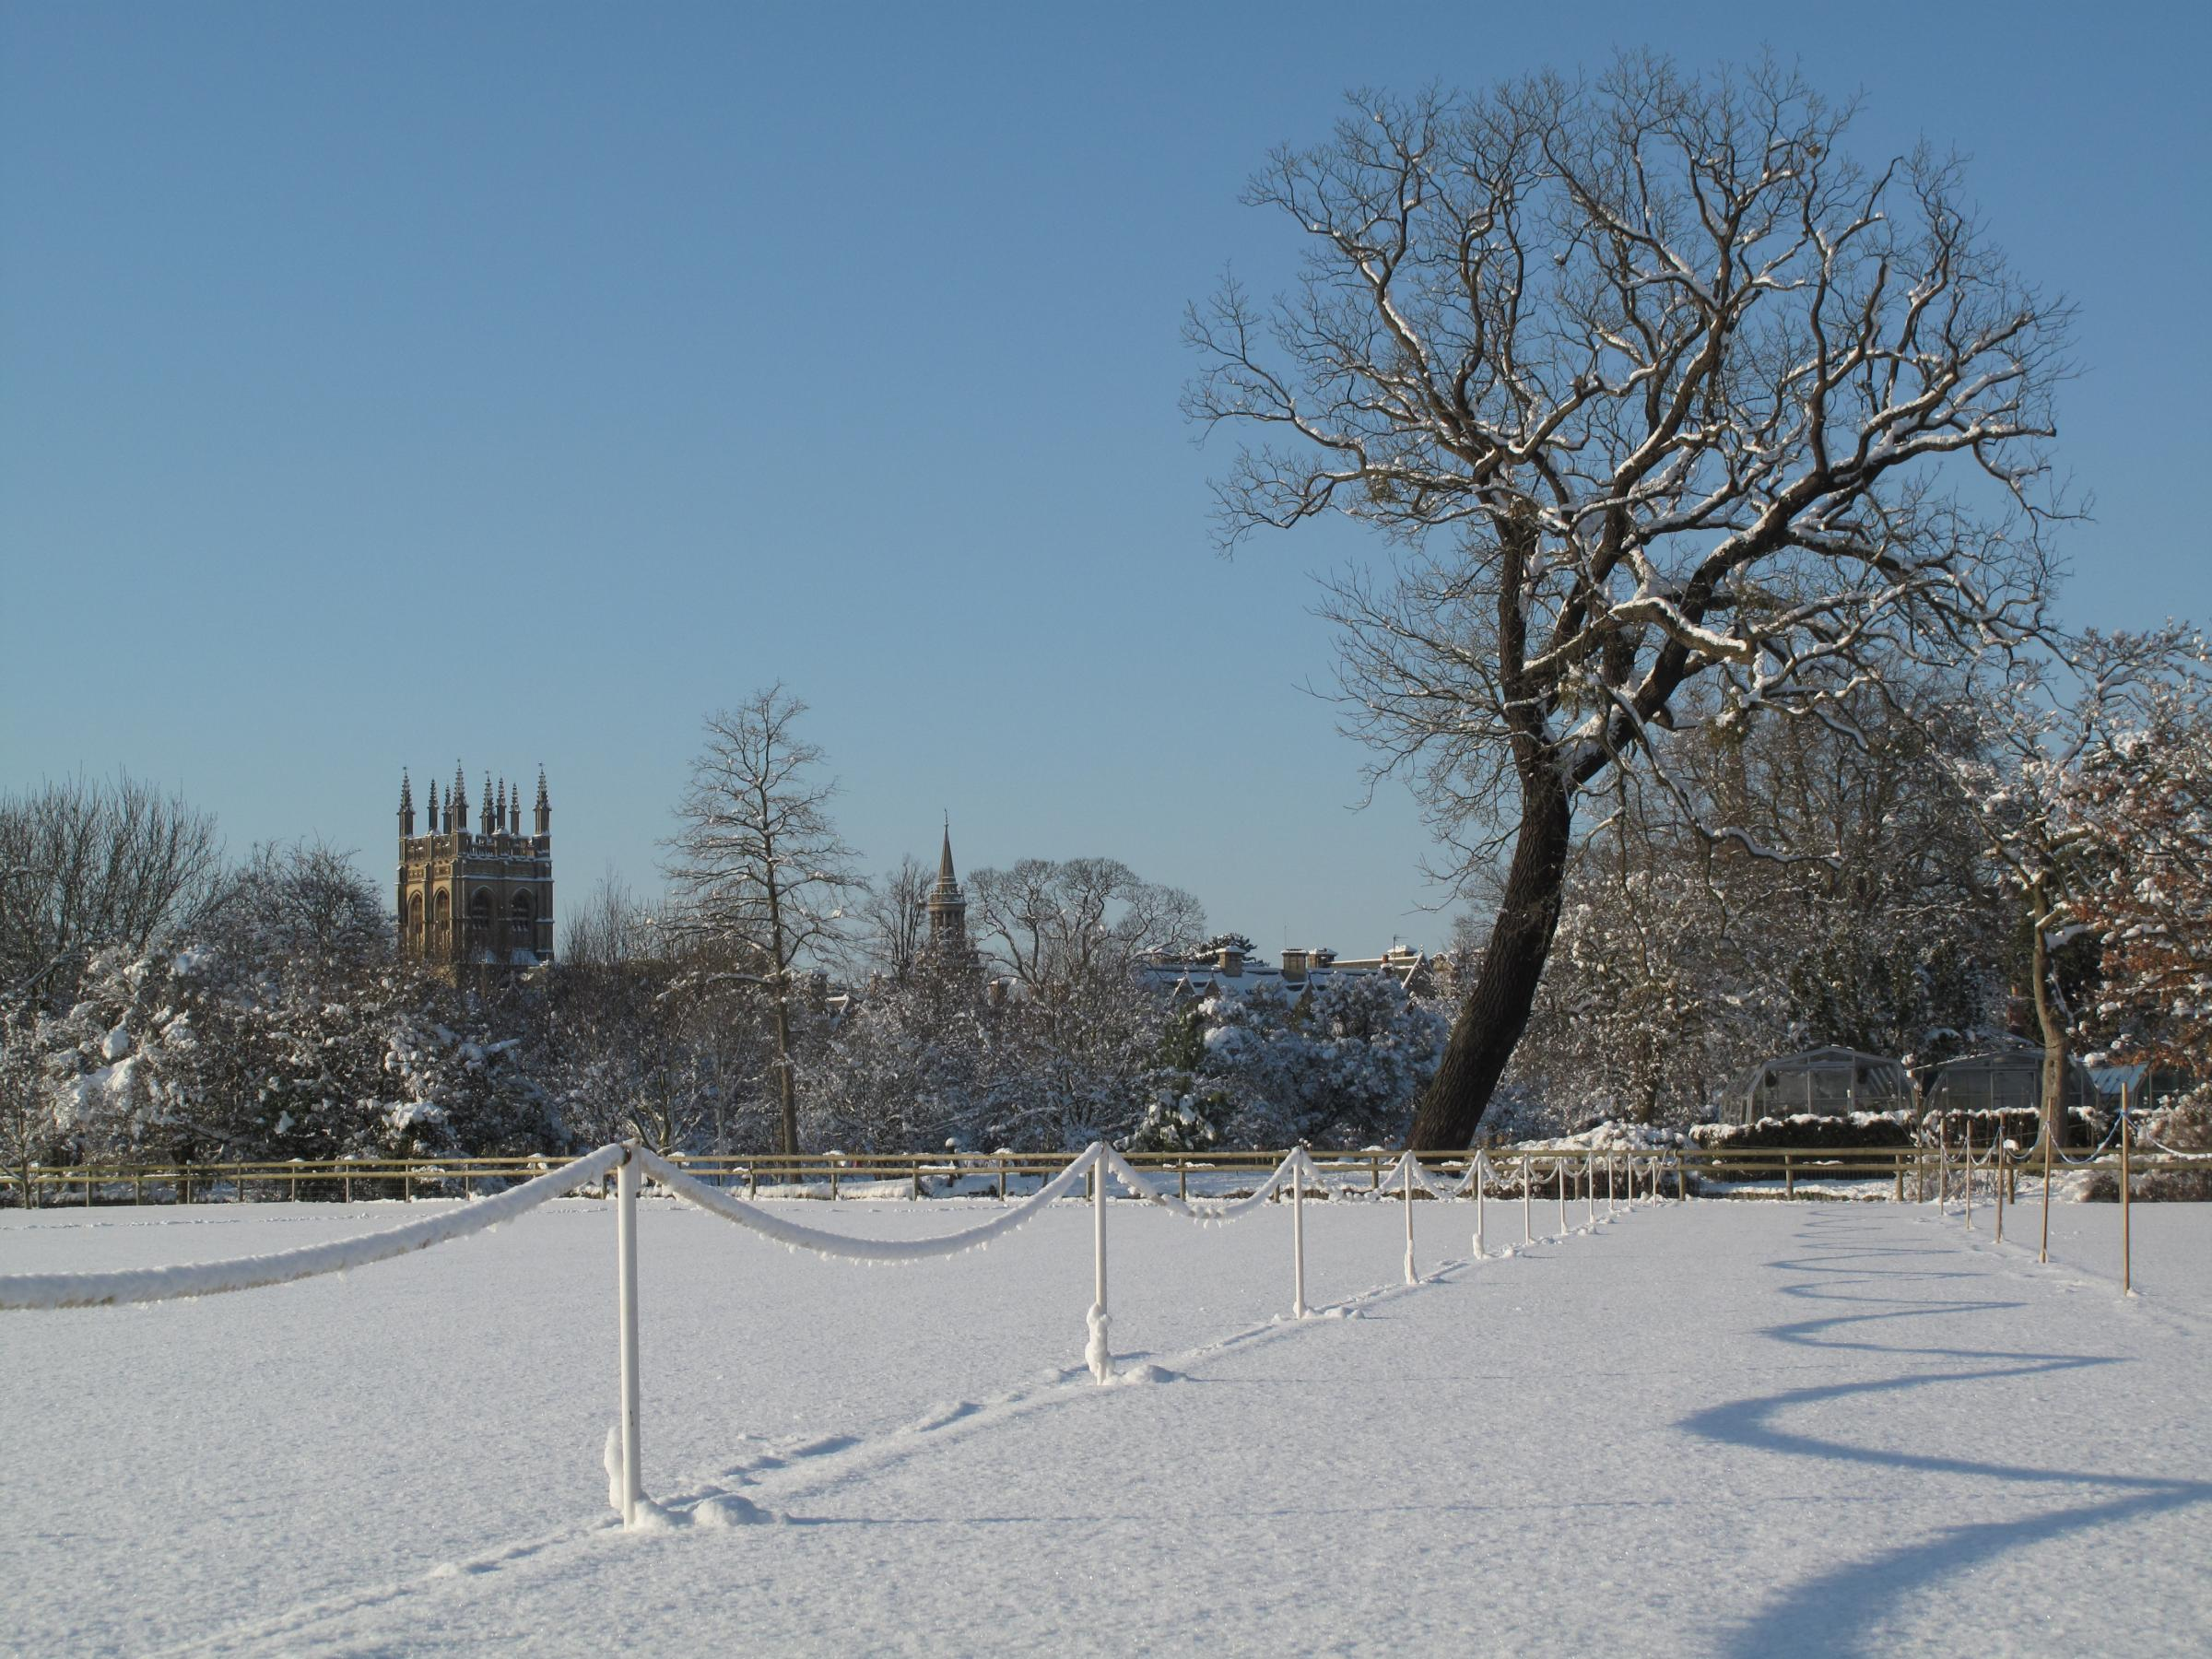 OXT_08/03/2018_15_Page leader Snow and blue sky oxford